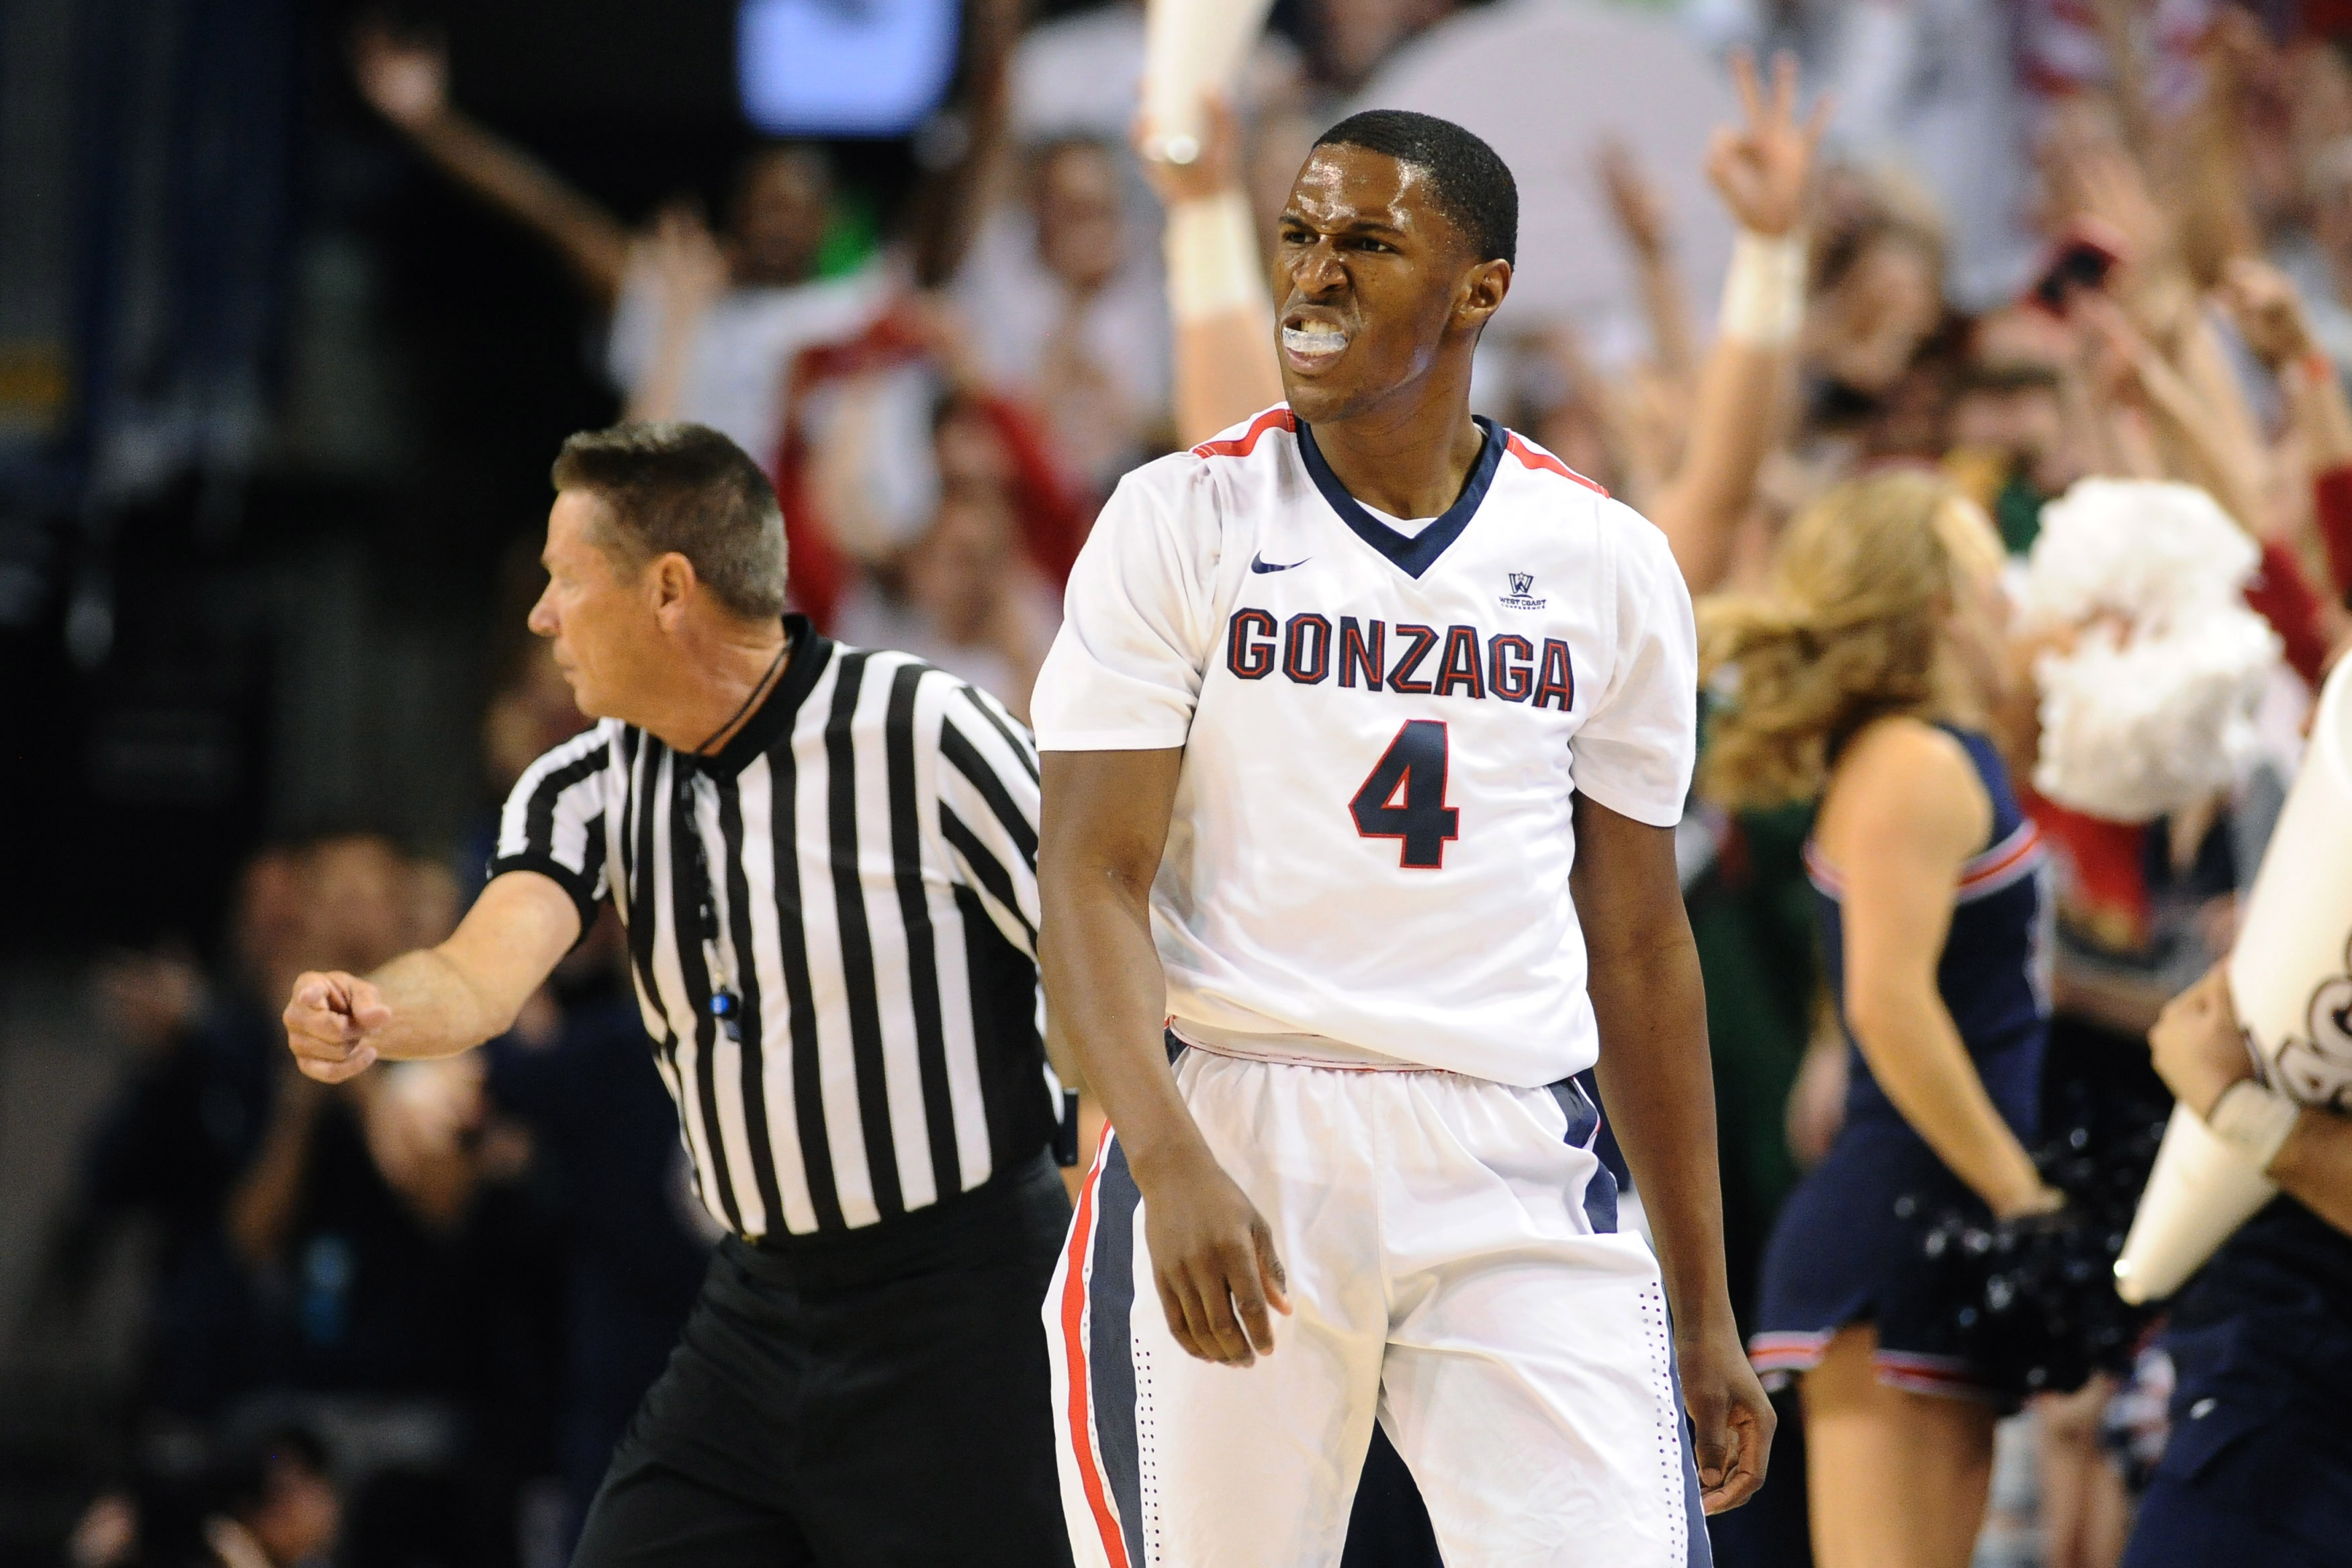 Dec 7, 2016; Spokane, WA, USA; Gonzaga Bulldogs guard Jordan Mathews (4) celebrates a three-pointer against the Washington Huskies during the first half at McCarthey Athletic Center. Mandatory Credit: James Snook-USA TODAY Sports